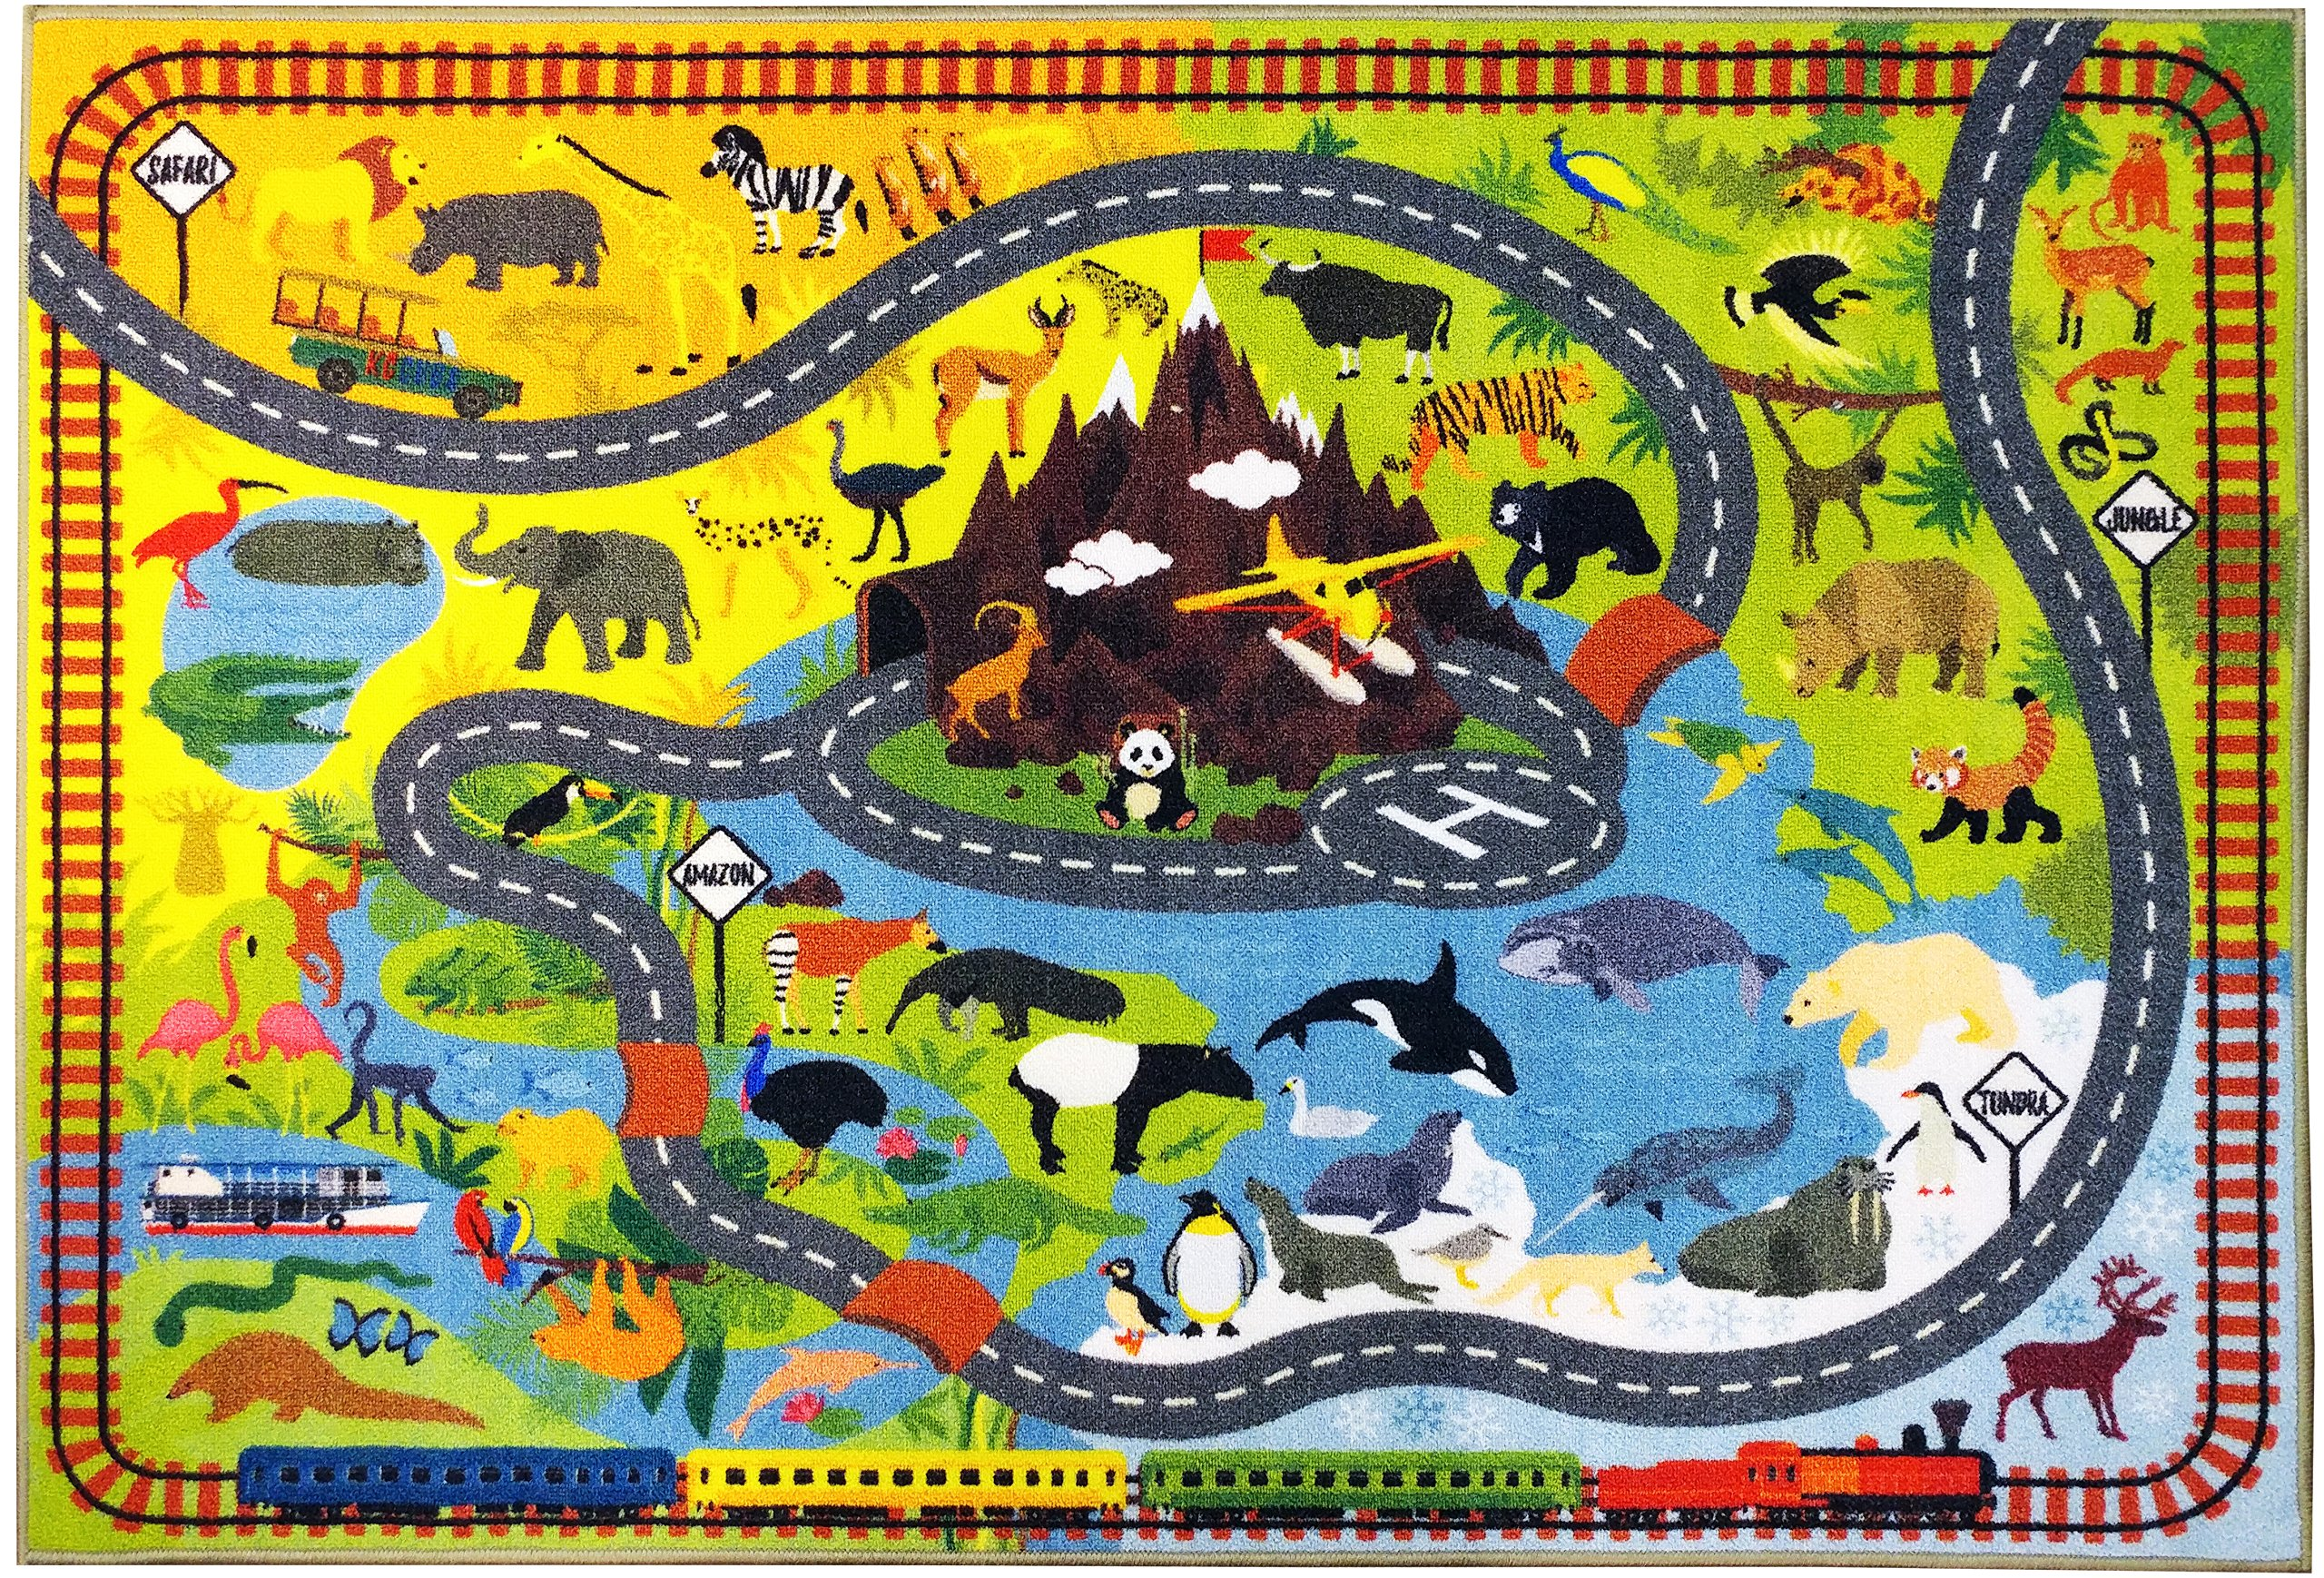 KC Cubs Playtime Collection Animal Safari Road Map Educational Learning & Game Area Rug Carpet for Kids and Children Bedrooms and Playroom (3' 3'' x 4' 7'') by KC Cubs